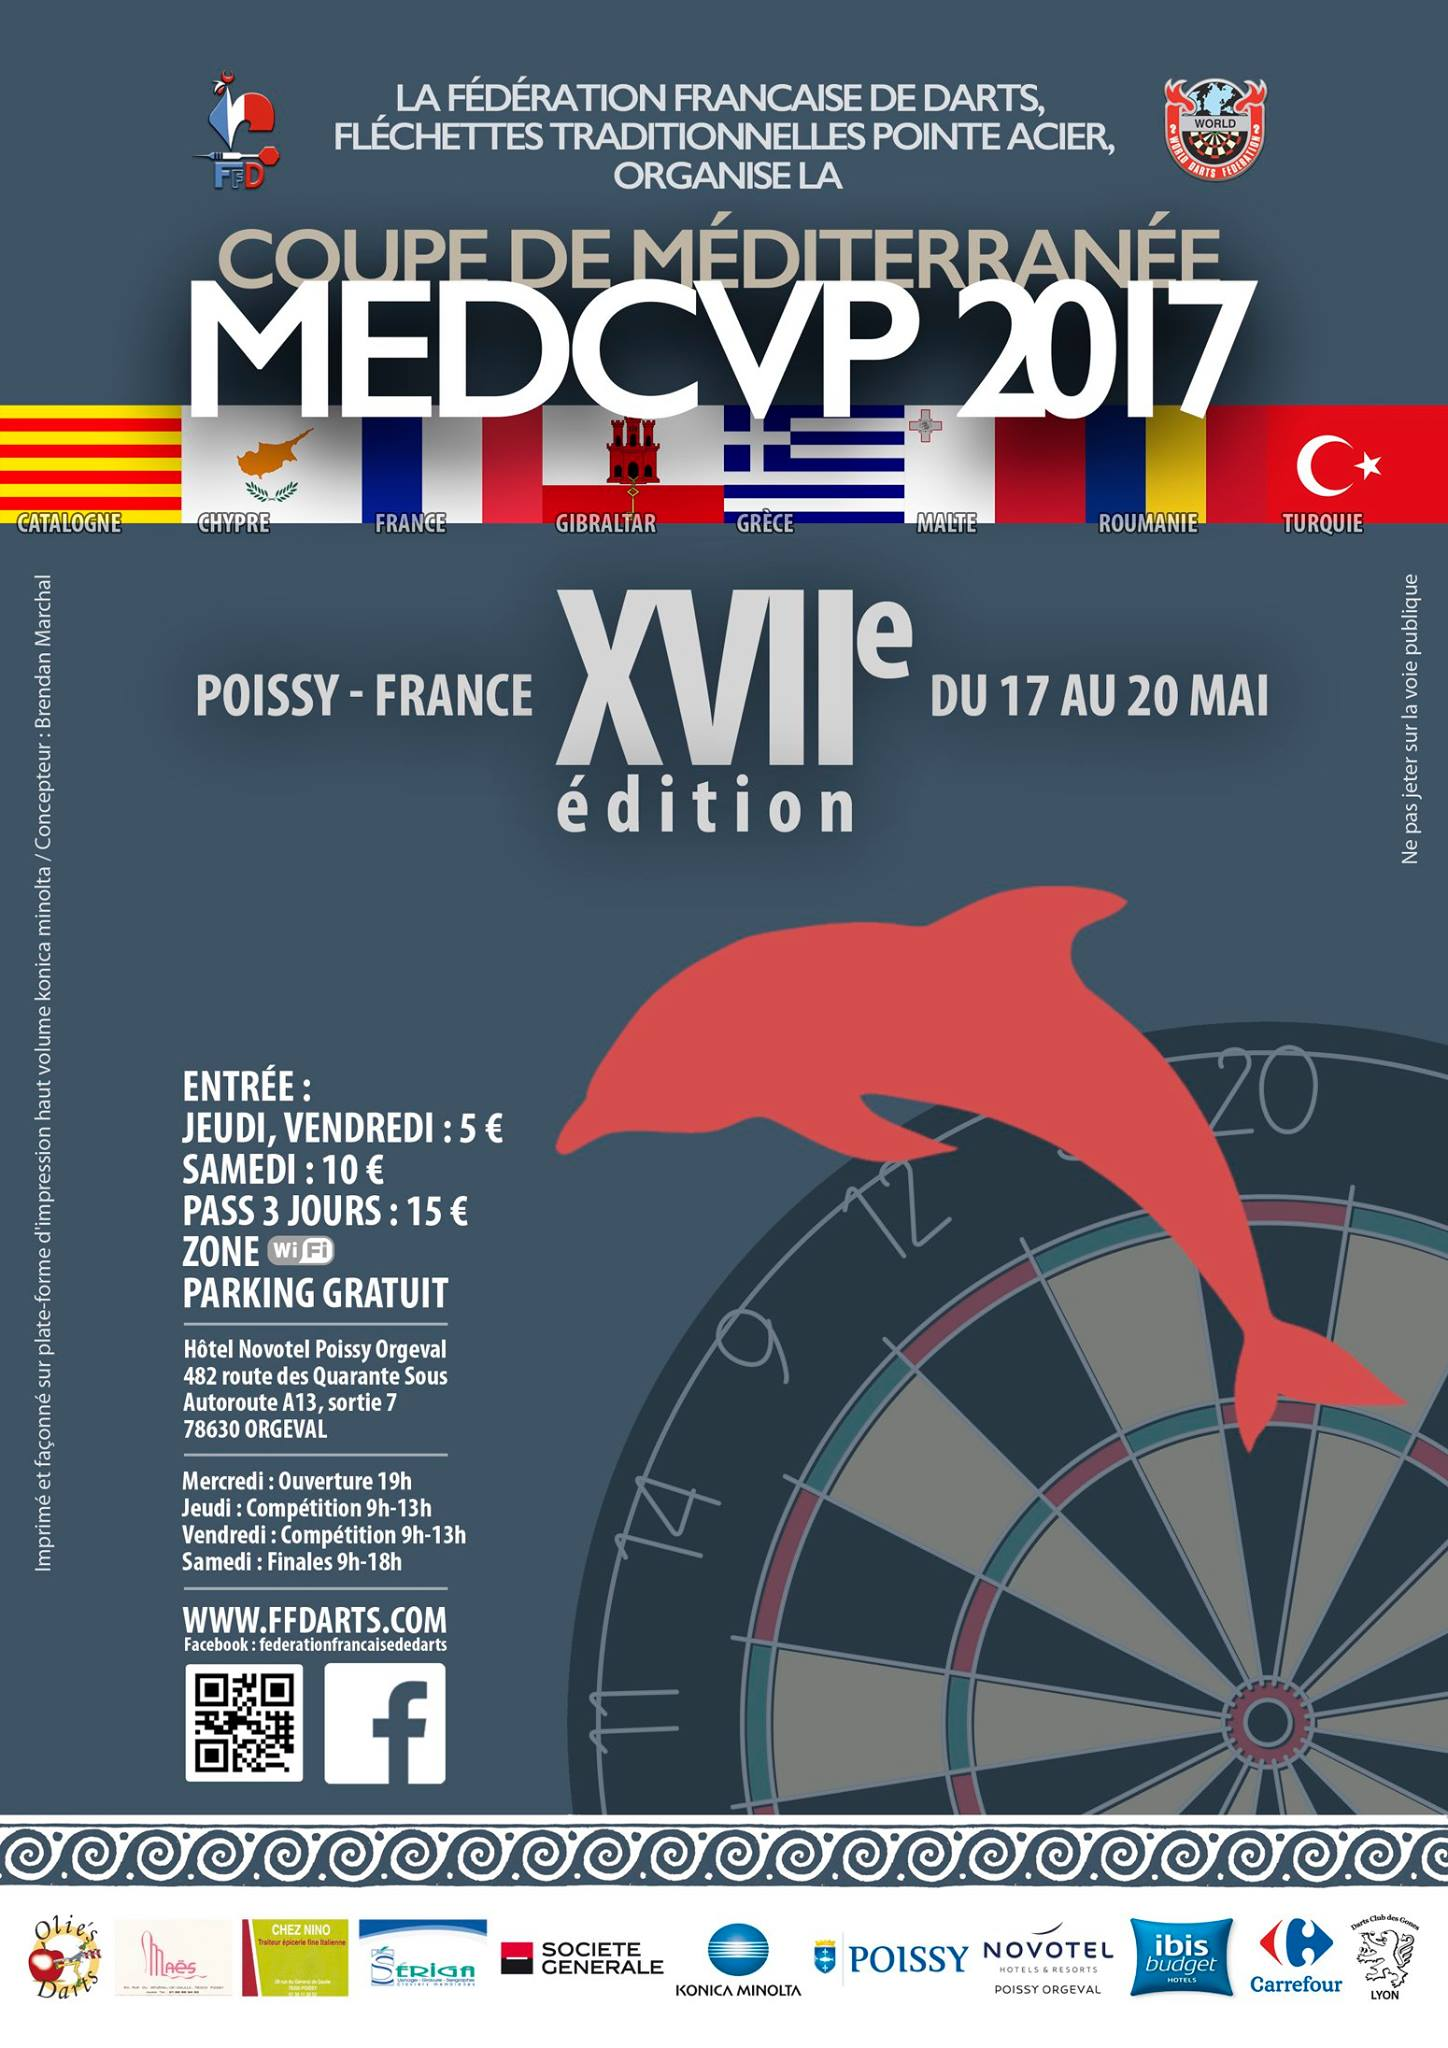 Med Cup 2017